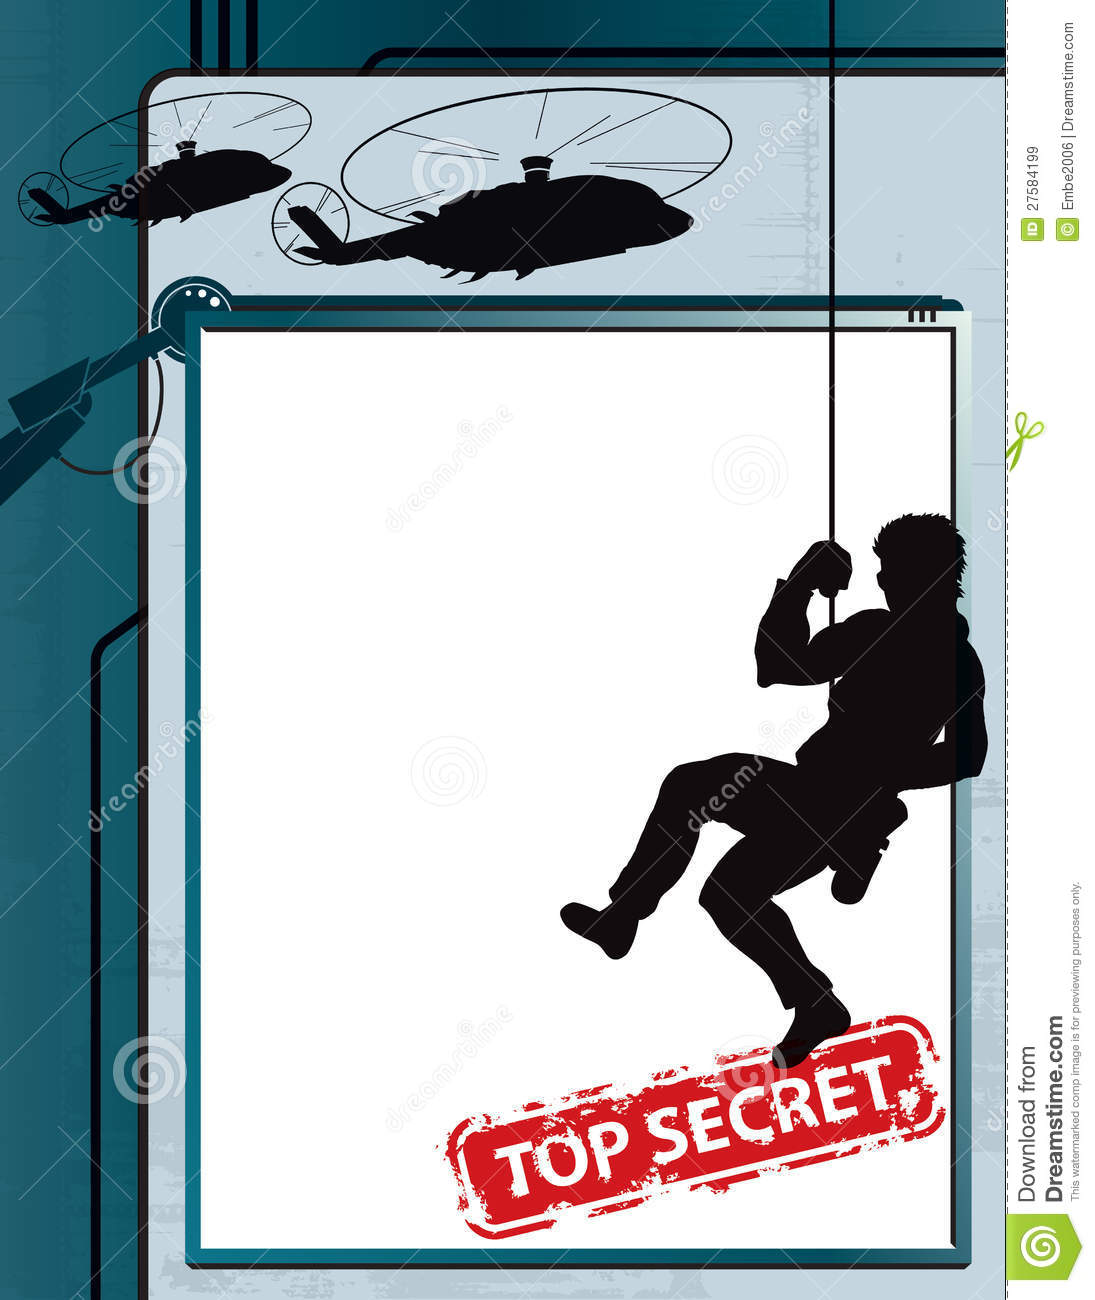 Top Secret Spy Background Royalty Free Stock Images - Image: 27584199